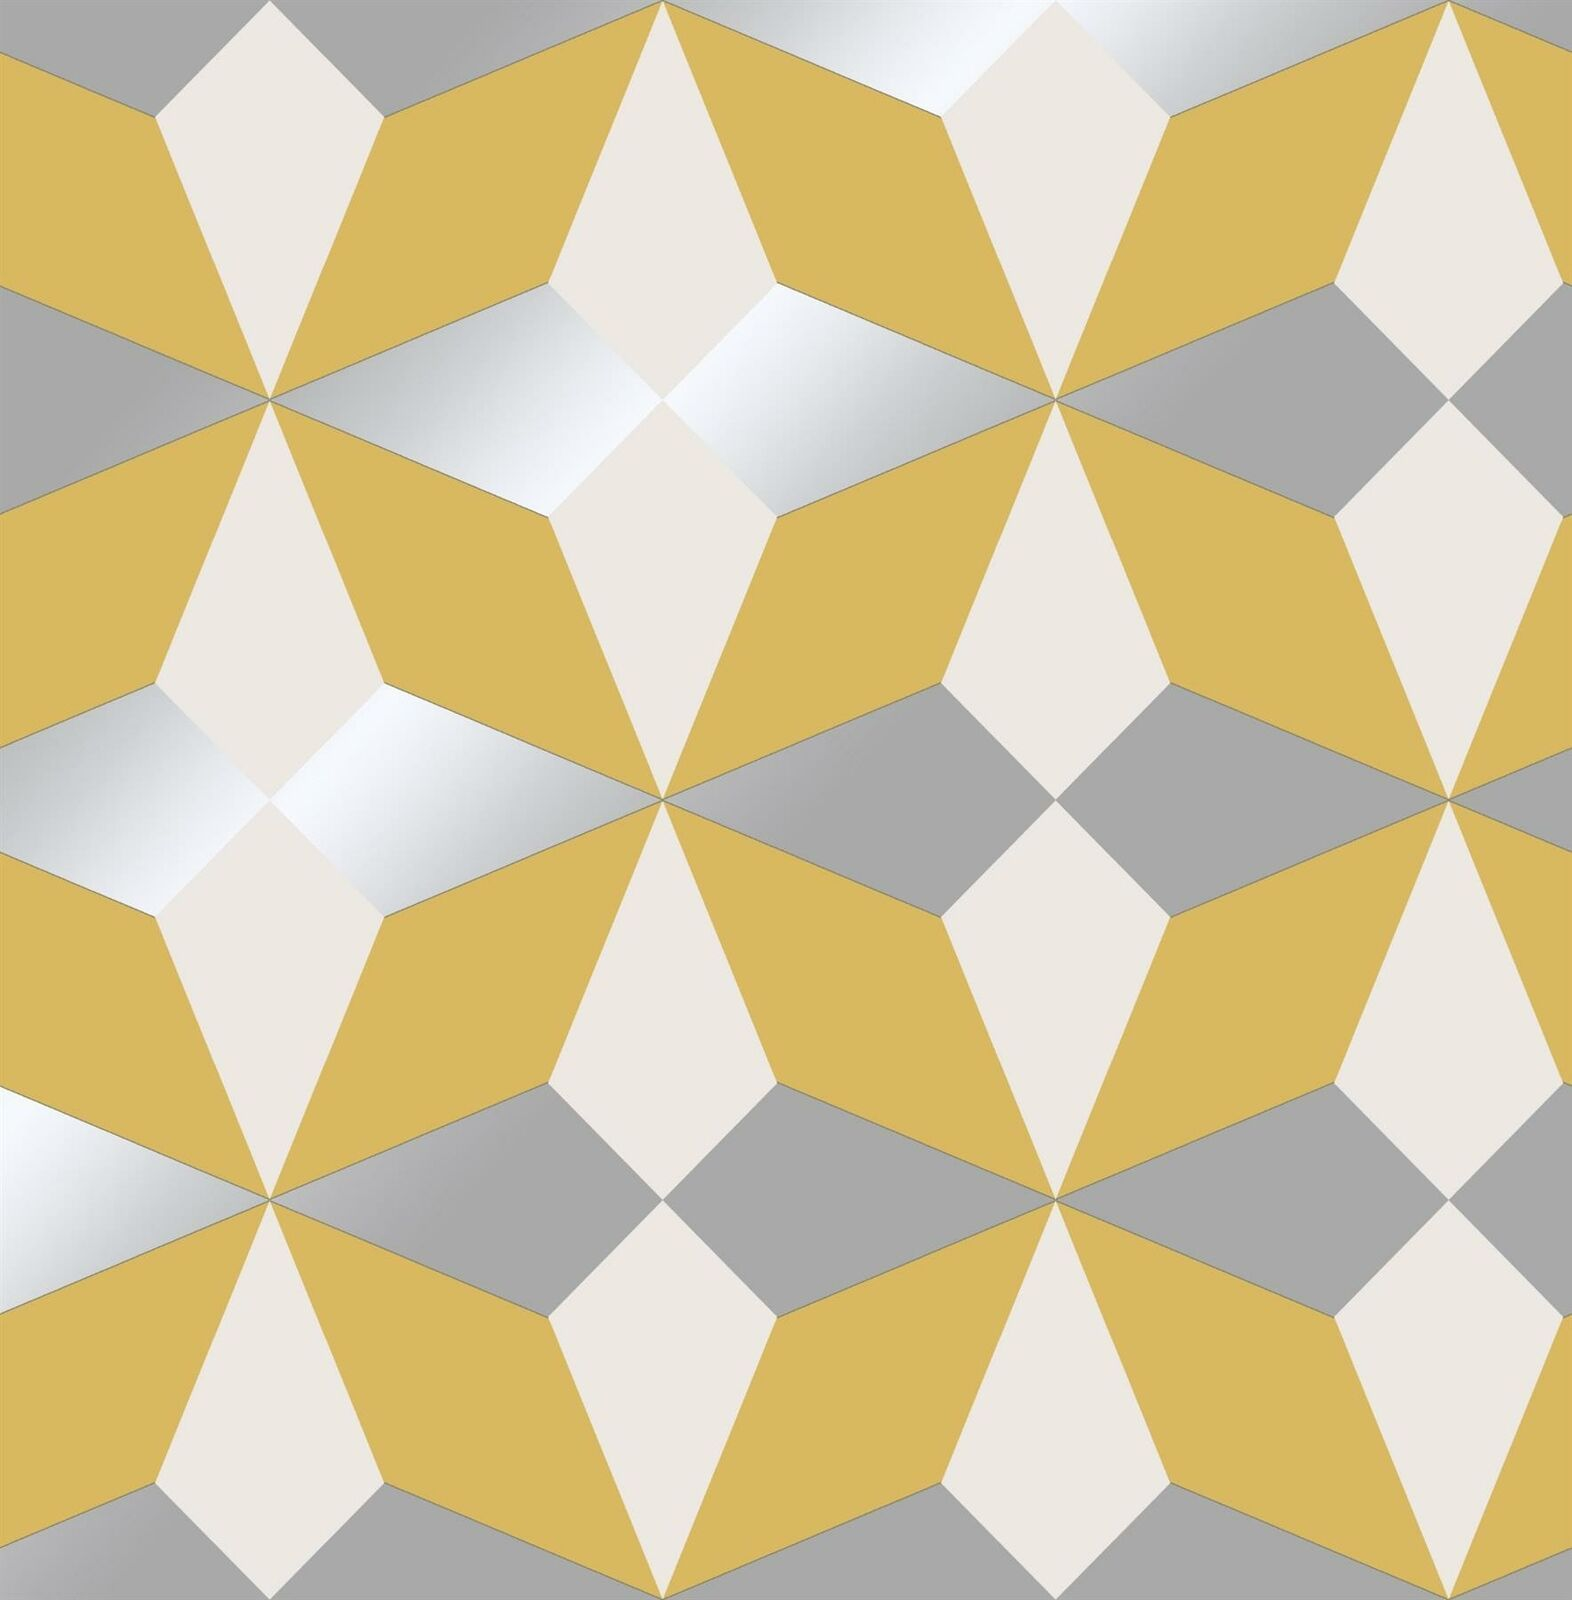 Details about Geometric Wallpaper Yellow White Silver